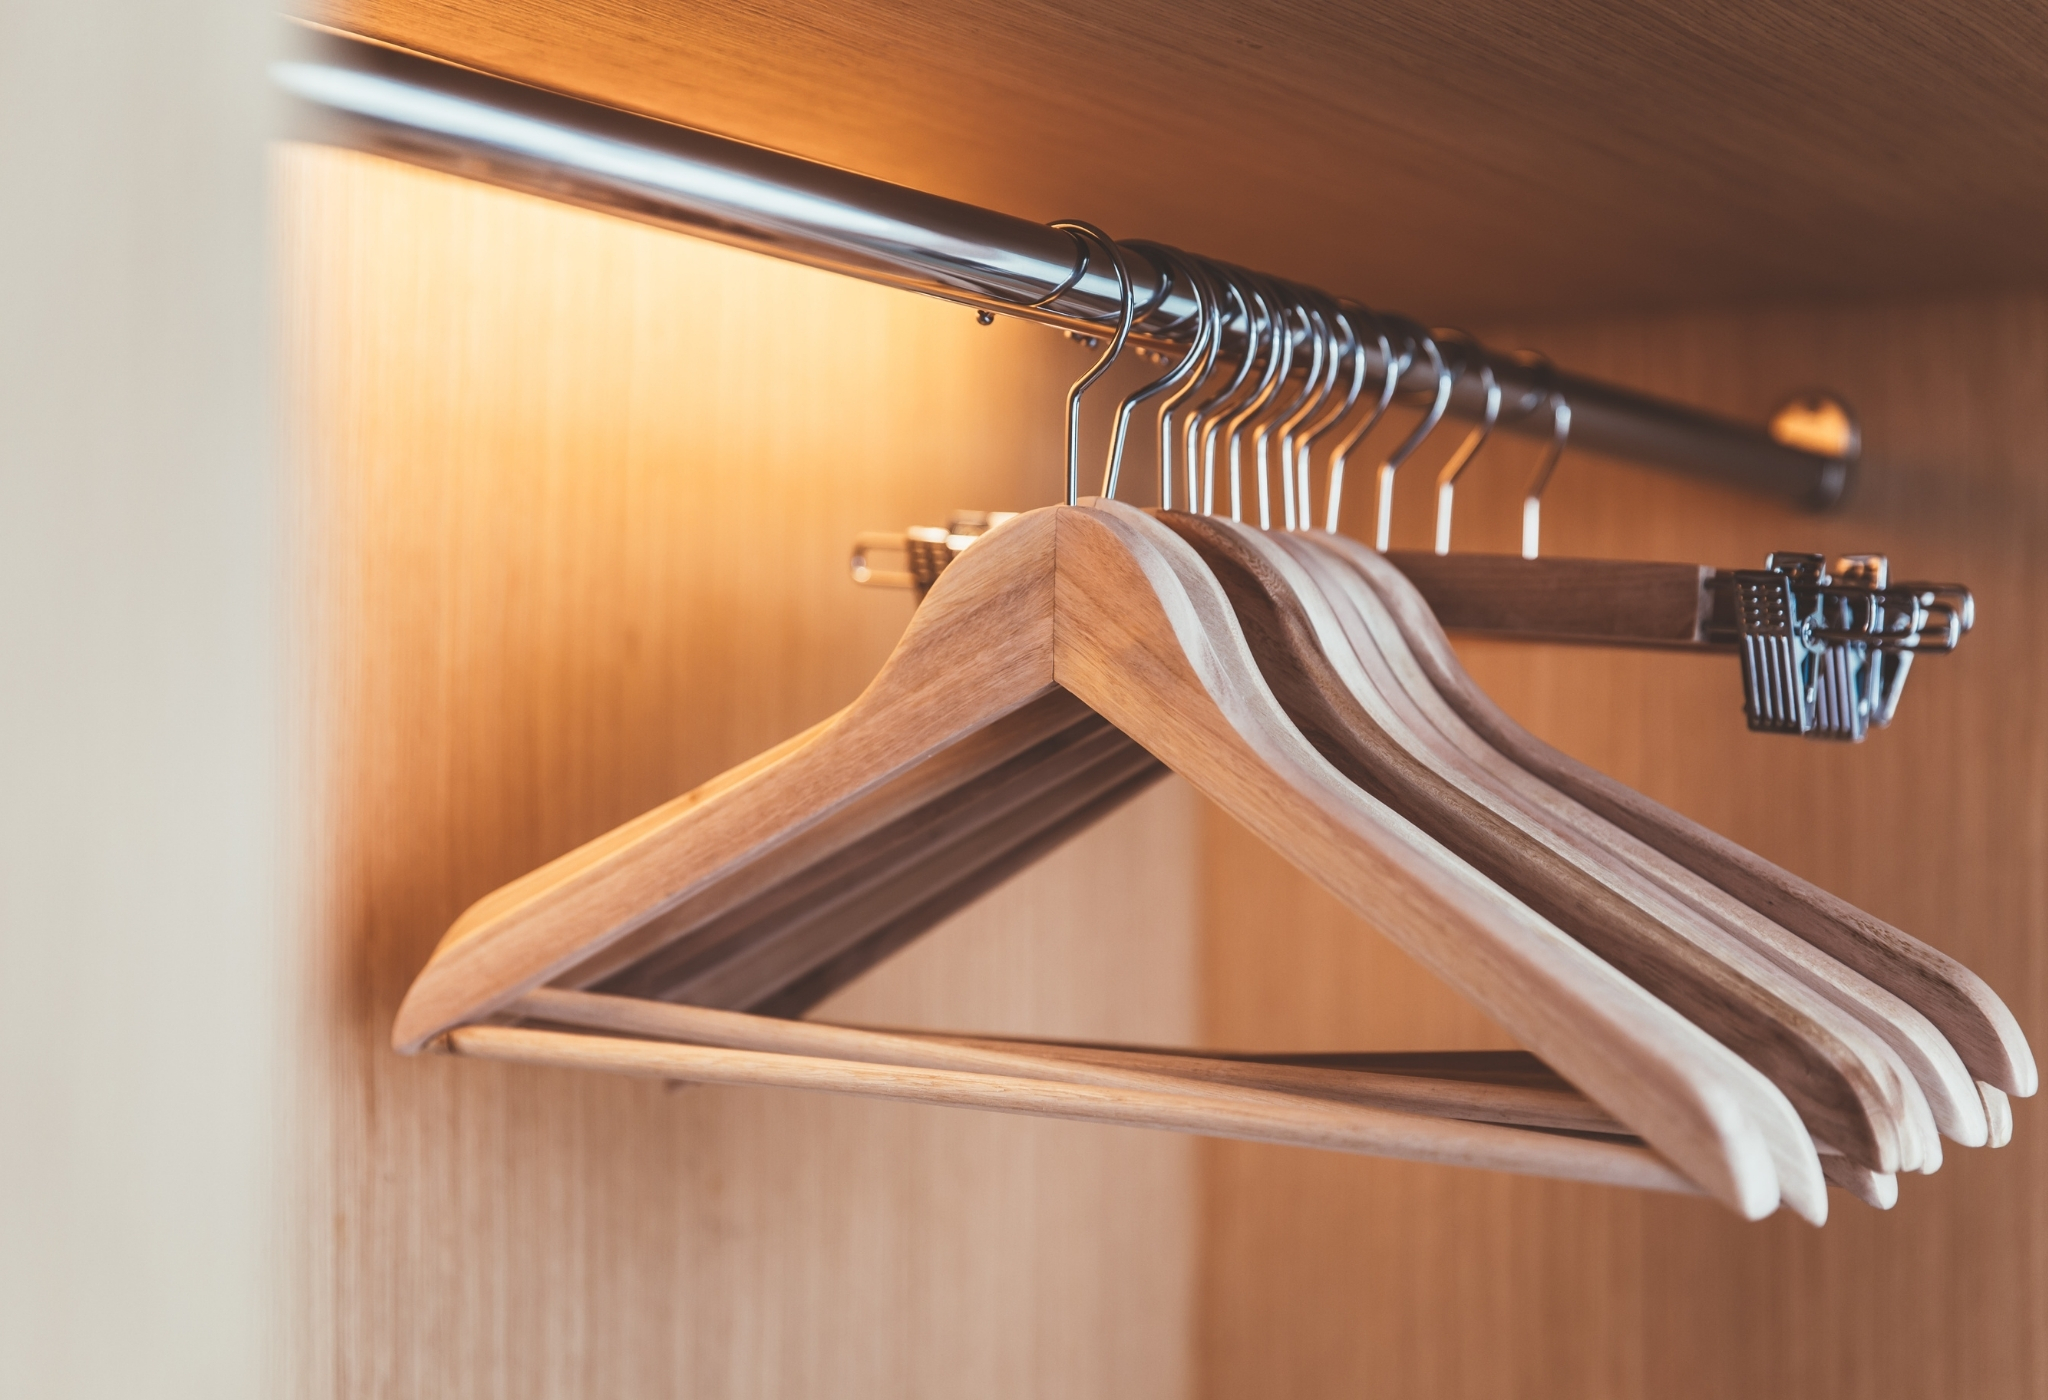 using hangers is one of the best clothing hacks for guys